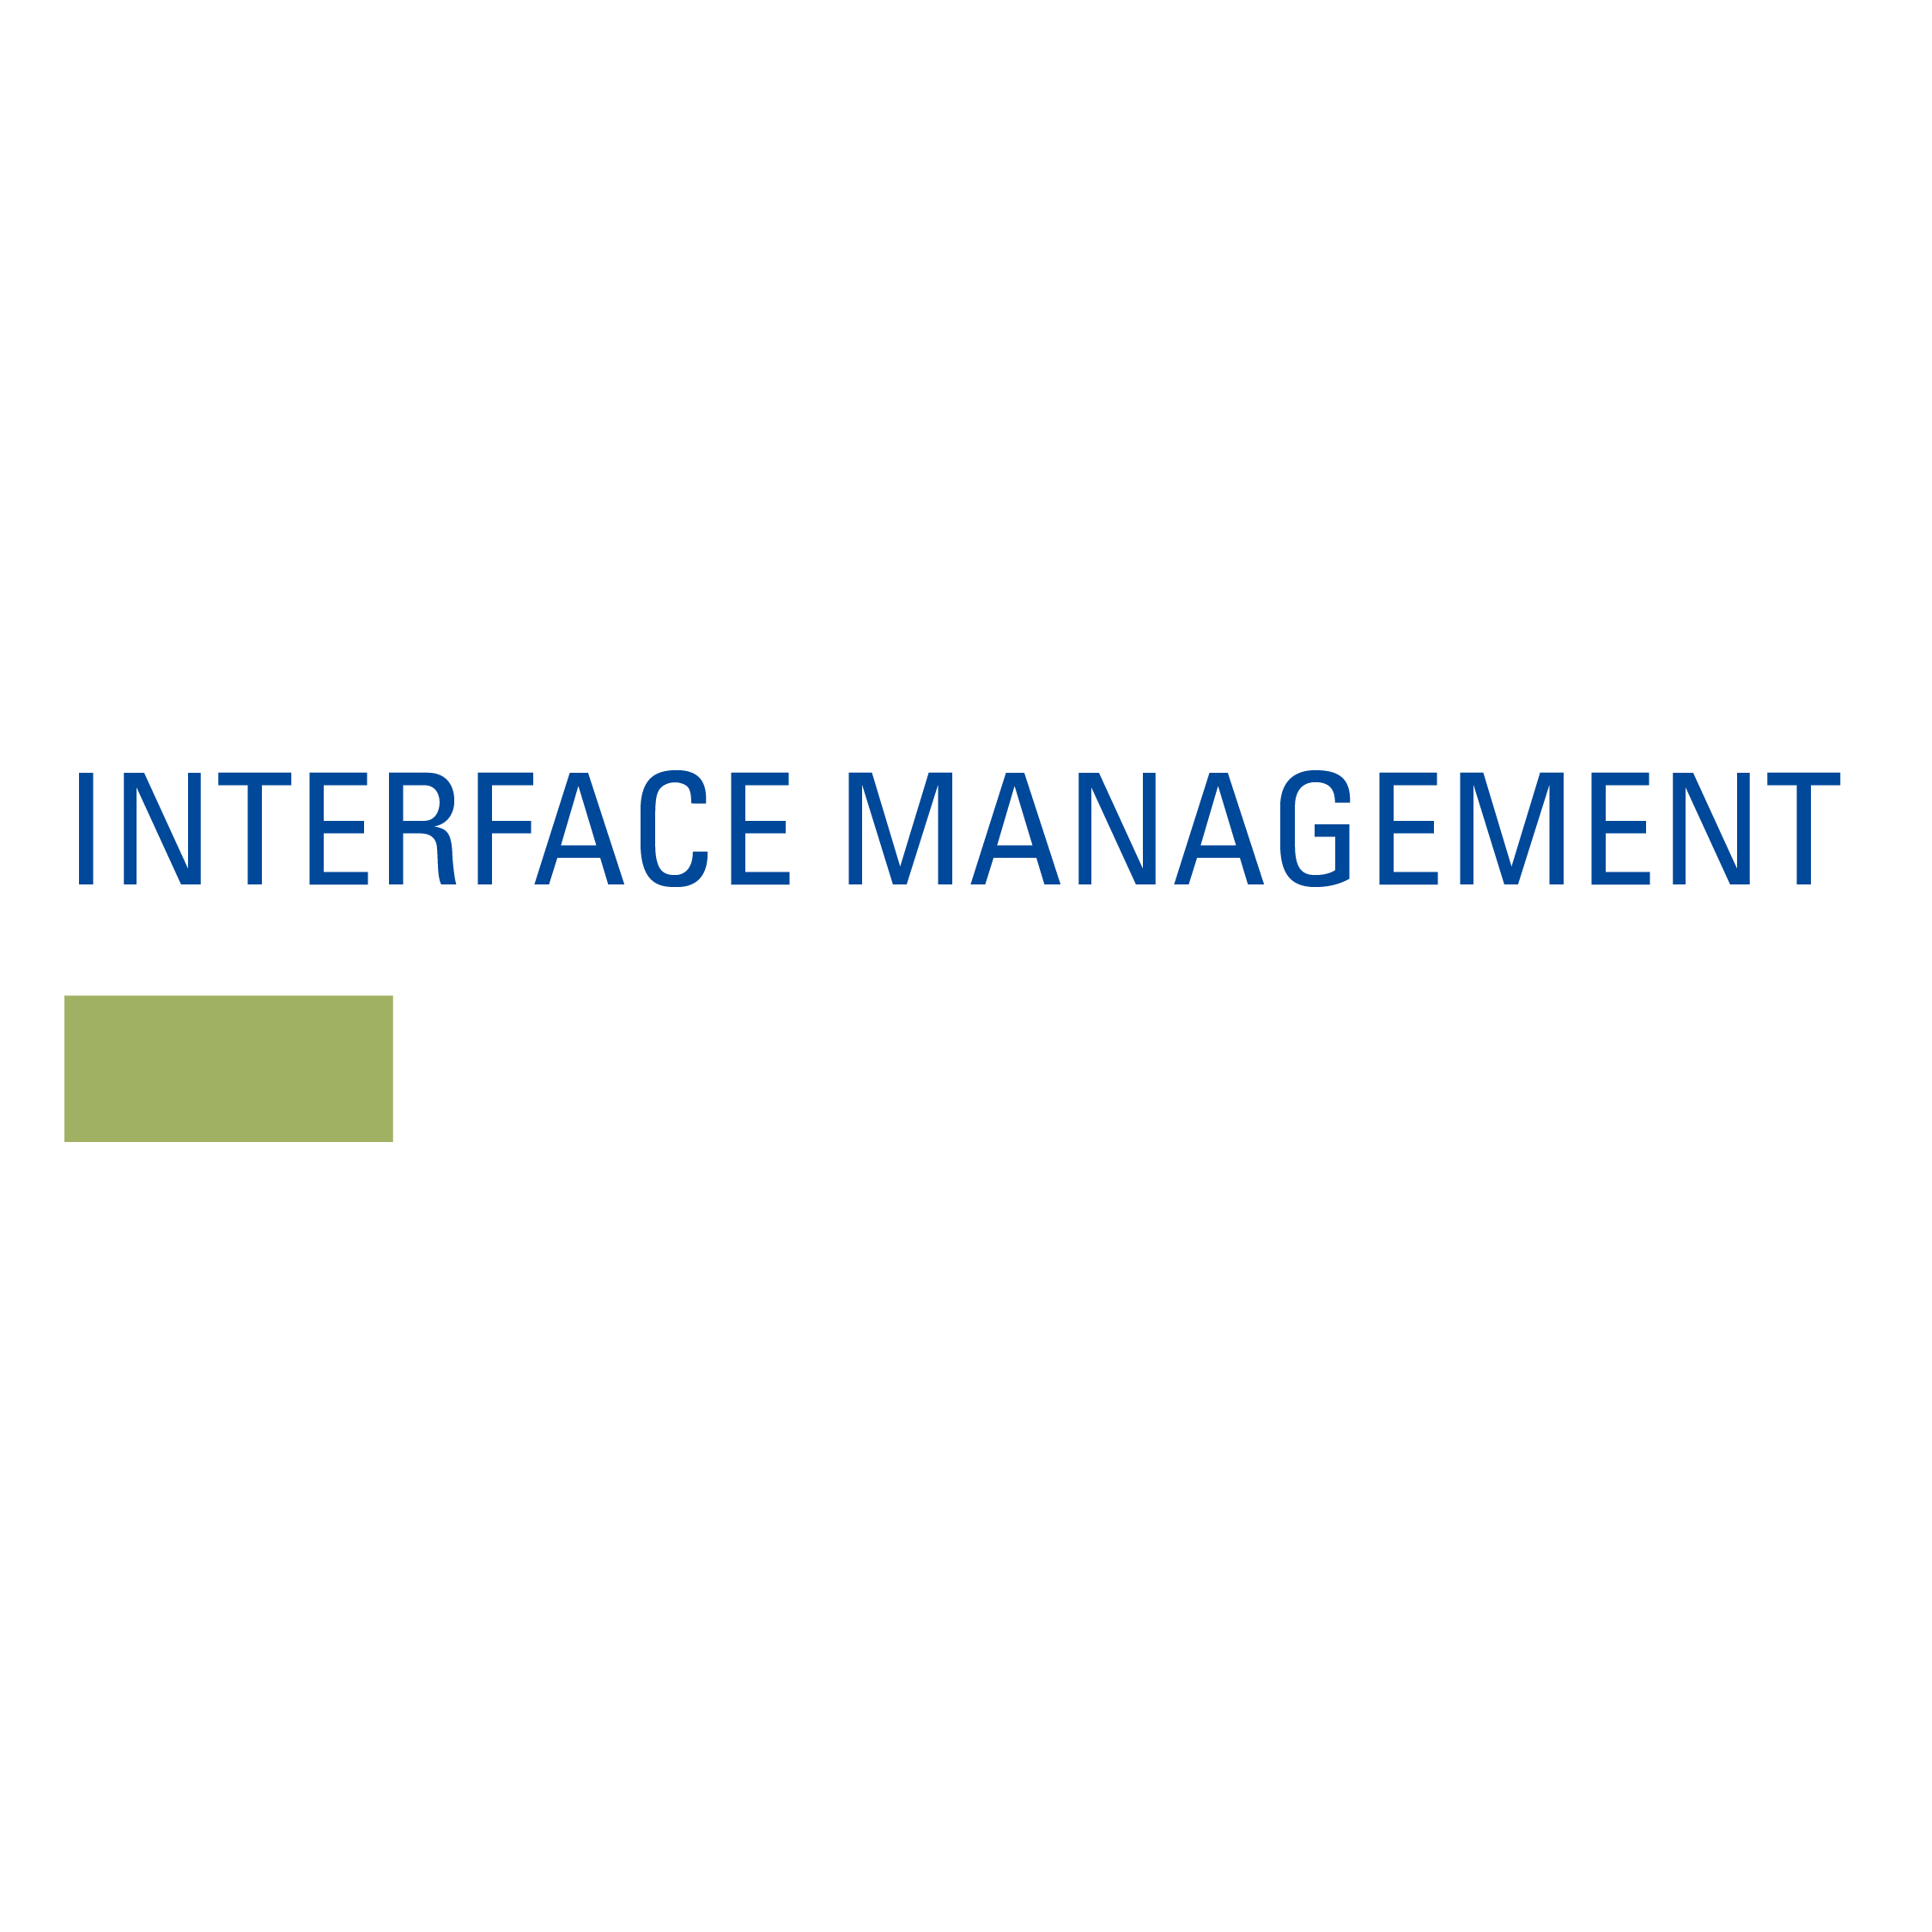 INTERFACE-MANAGEMENT